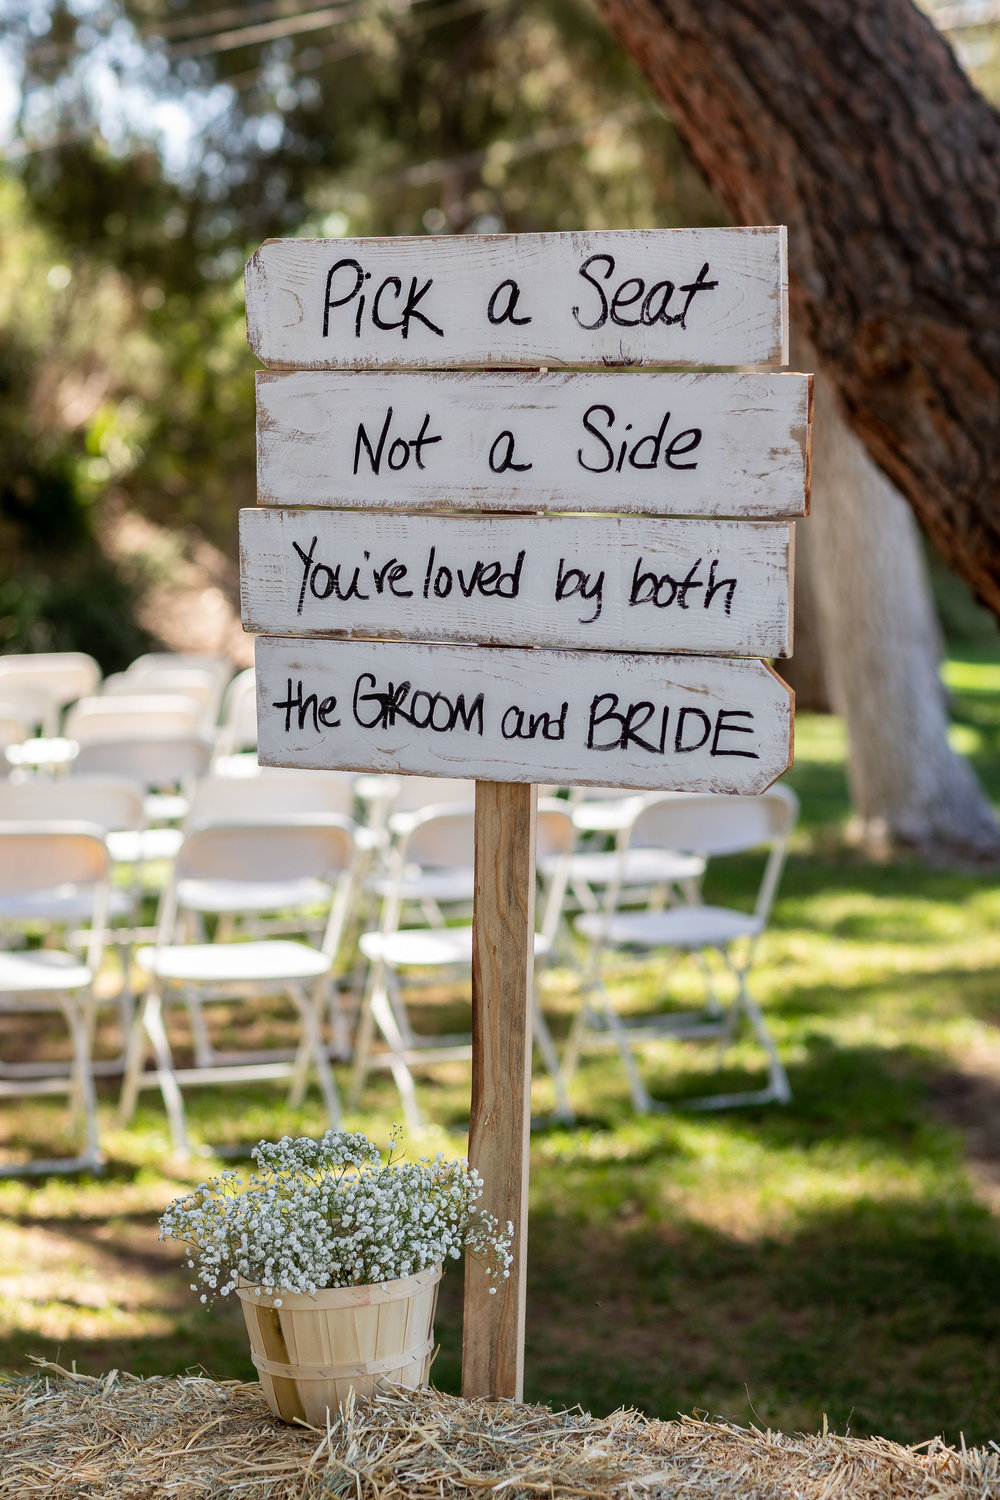 Pick a Seat Not a Side Wedding Signs.jpg